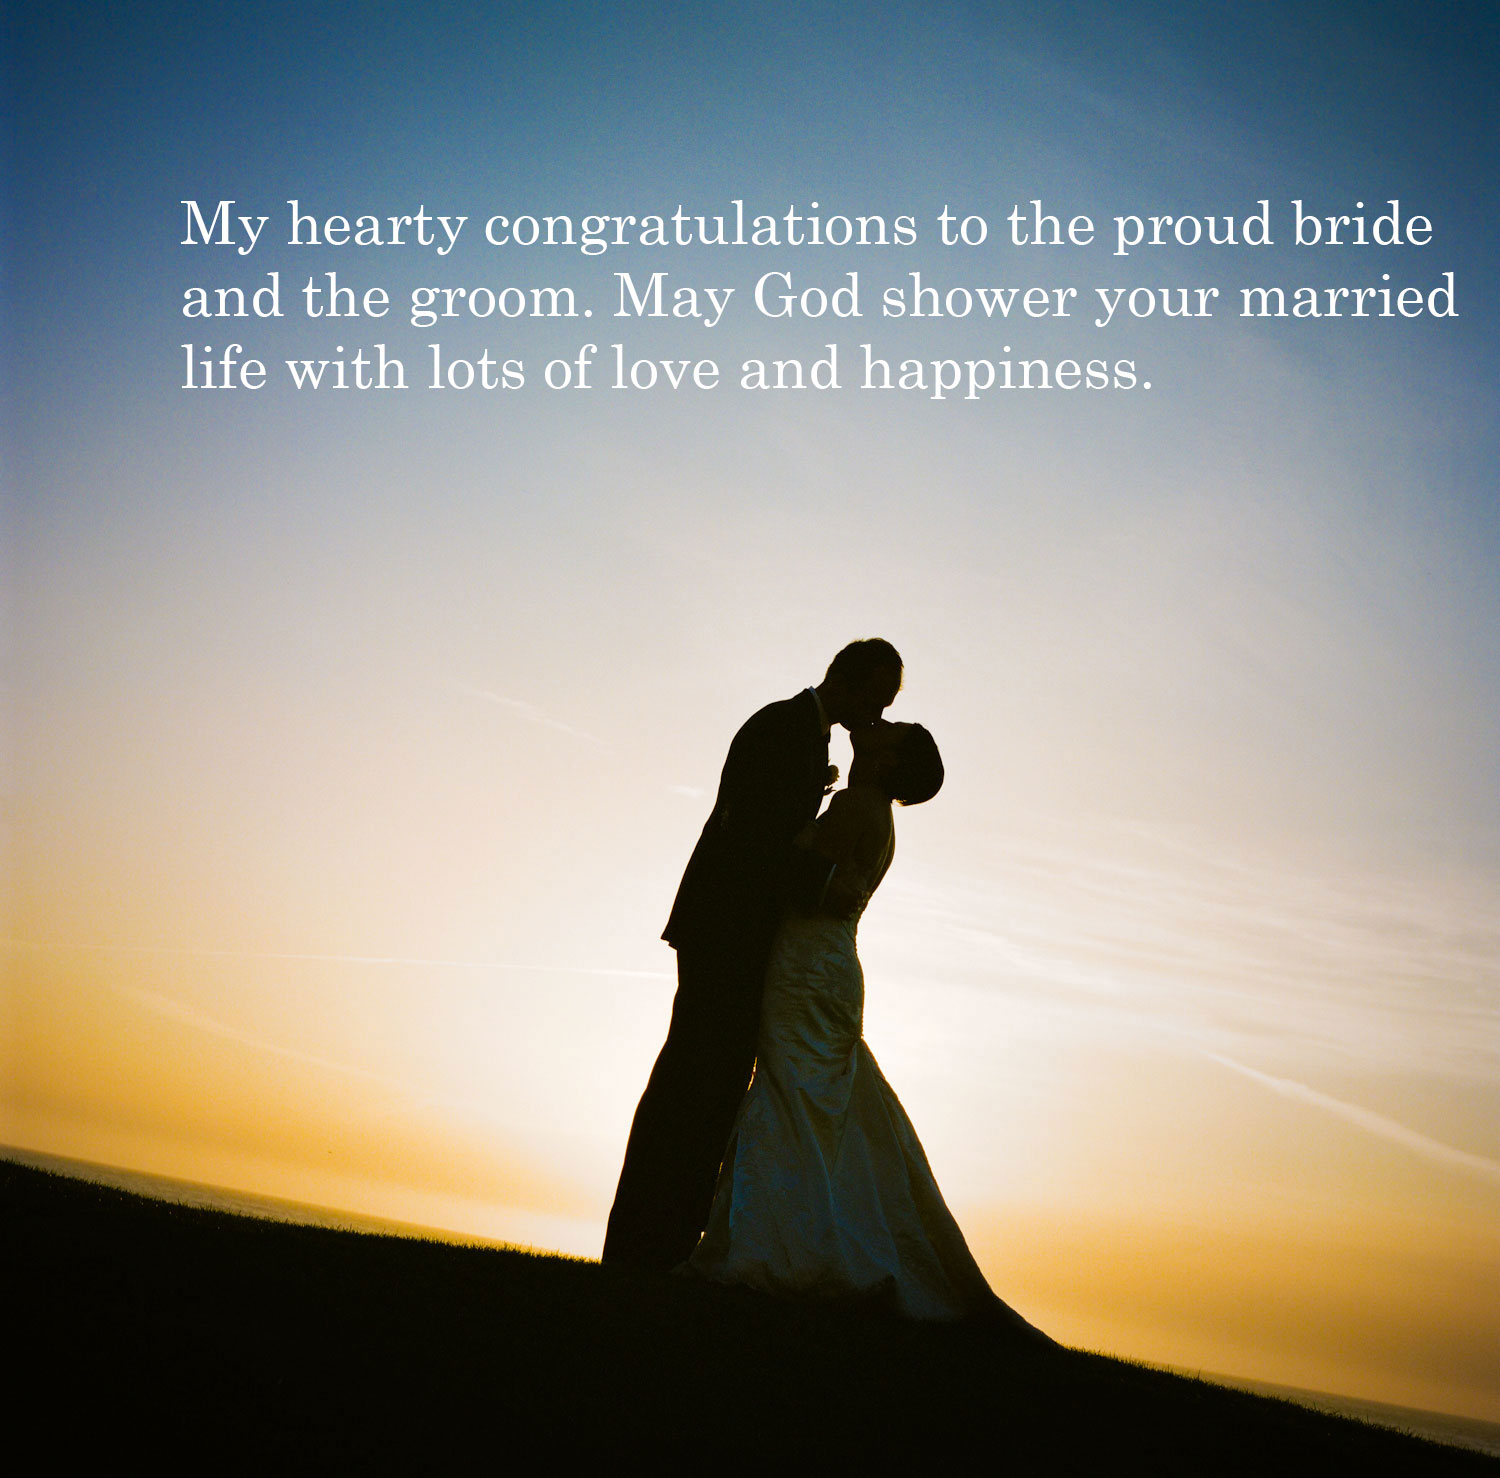 Wedding Congratulations Messages Filed under wedding quotes